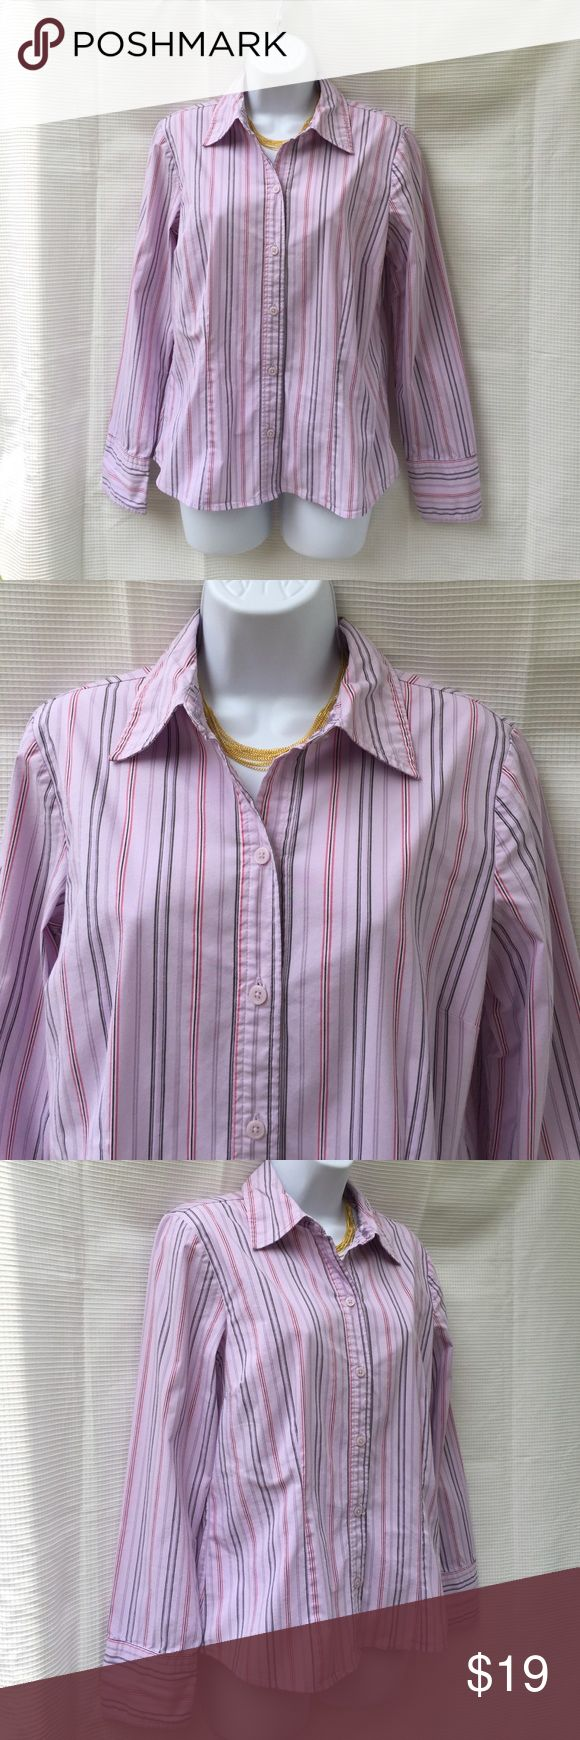 Old navy pink striped polo shirt ladies large Old Navy pink striped polo shirt. Size large. Perfect fit/stretch. Made in the Philippines. 62% cotton 34% nylon 4% spandex. Pre-loved in excellent condition. Women's Ladies Fashion. Check out my closet, we have a variety of women's, Victoria Secret, handbags 👜 purse 👛 Aerosoles, shoes 👠fashion jewelry, necklace, clothing, dress, Beauty, home 🏡 .  Ships via USPS. Smoke & Pet-Free. Offers 30% OFF bundle discount. Always a FREE GIFT 🎁 with…